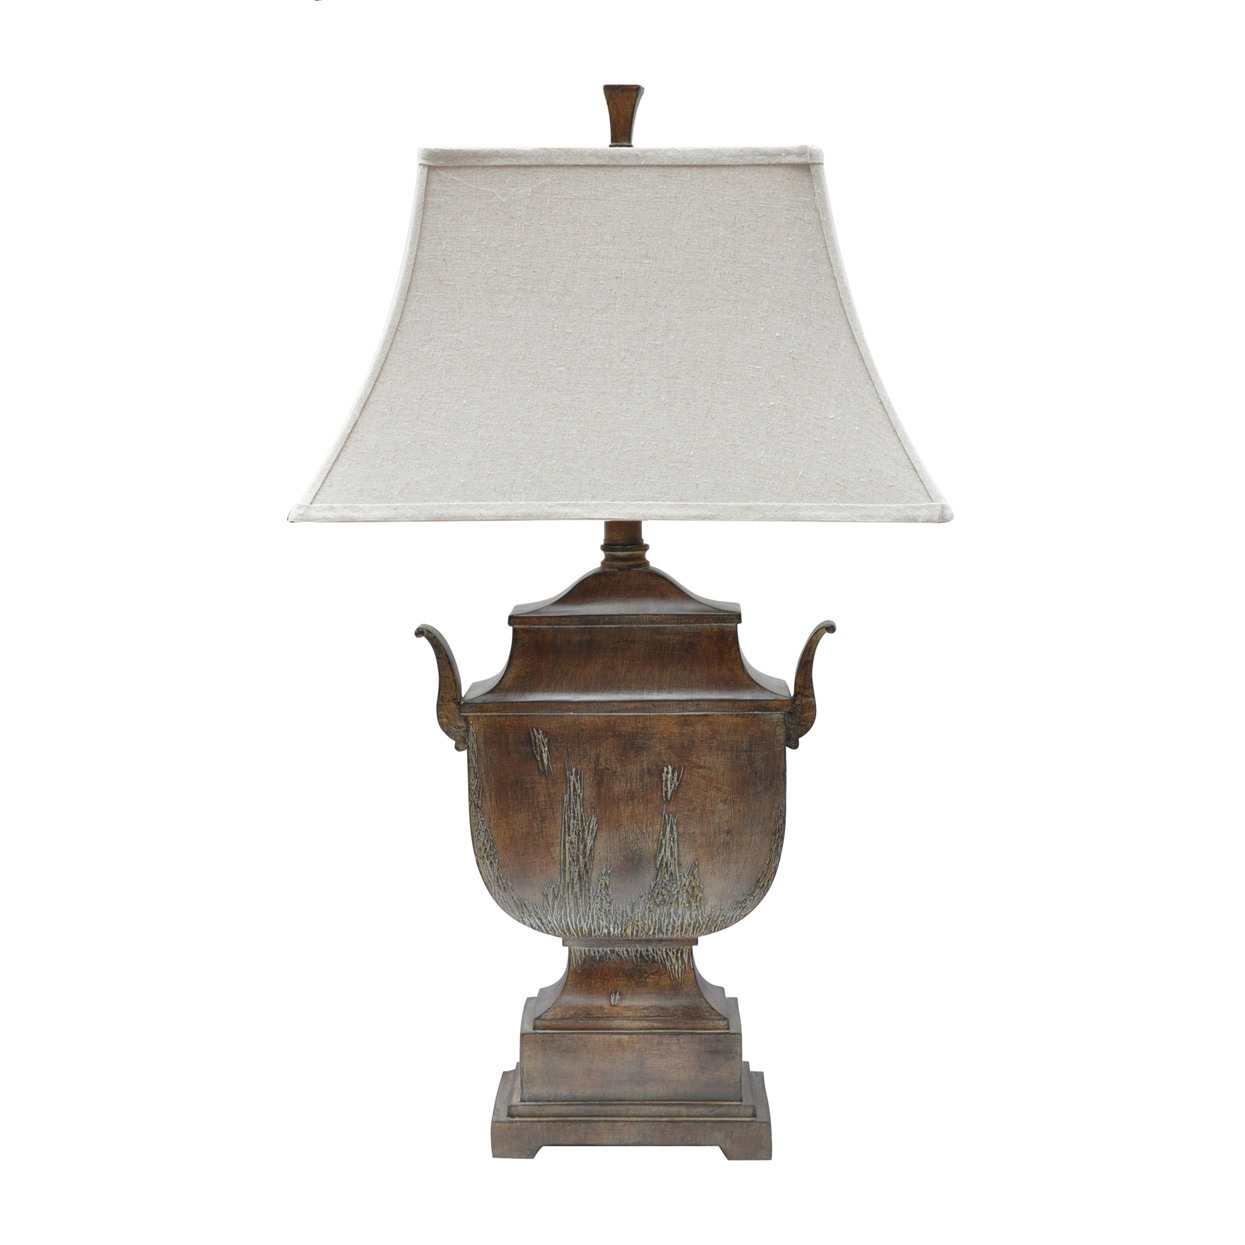 Shop seville urn rustic wood 34 inch table lamp free shipping today overstock 11739975